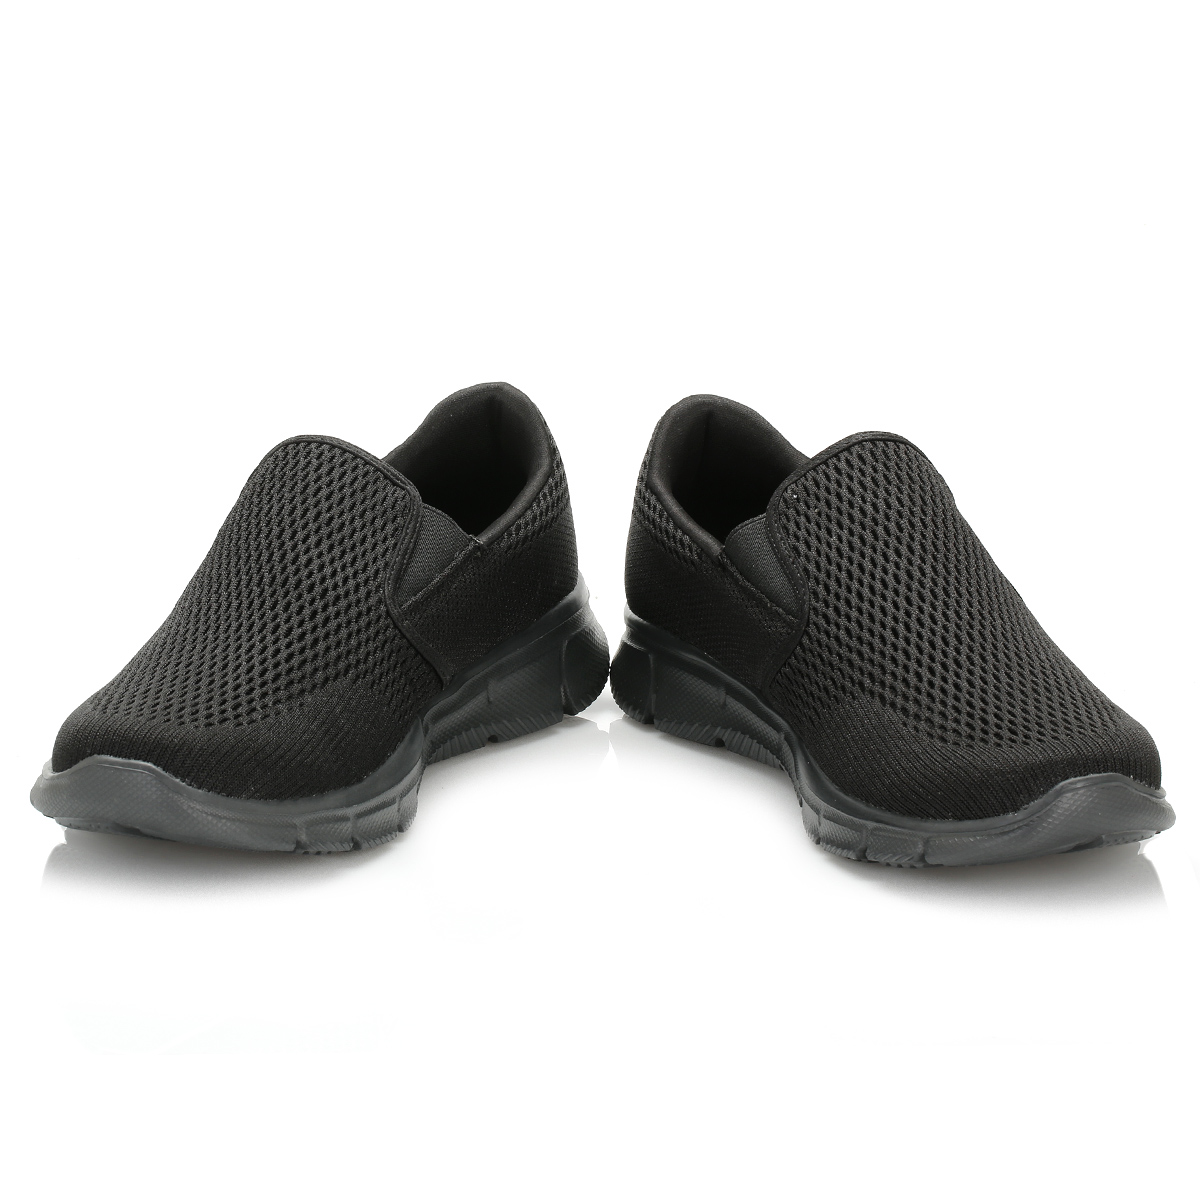 788b0633b2c7 skechers slippers mens 2014 cheap   OFF63% The Largest Catalog Discounts